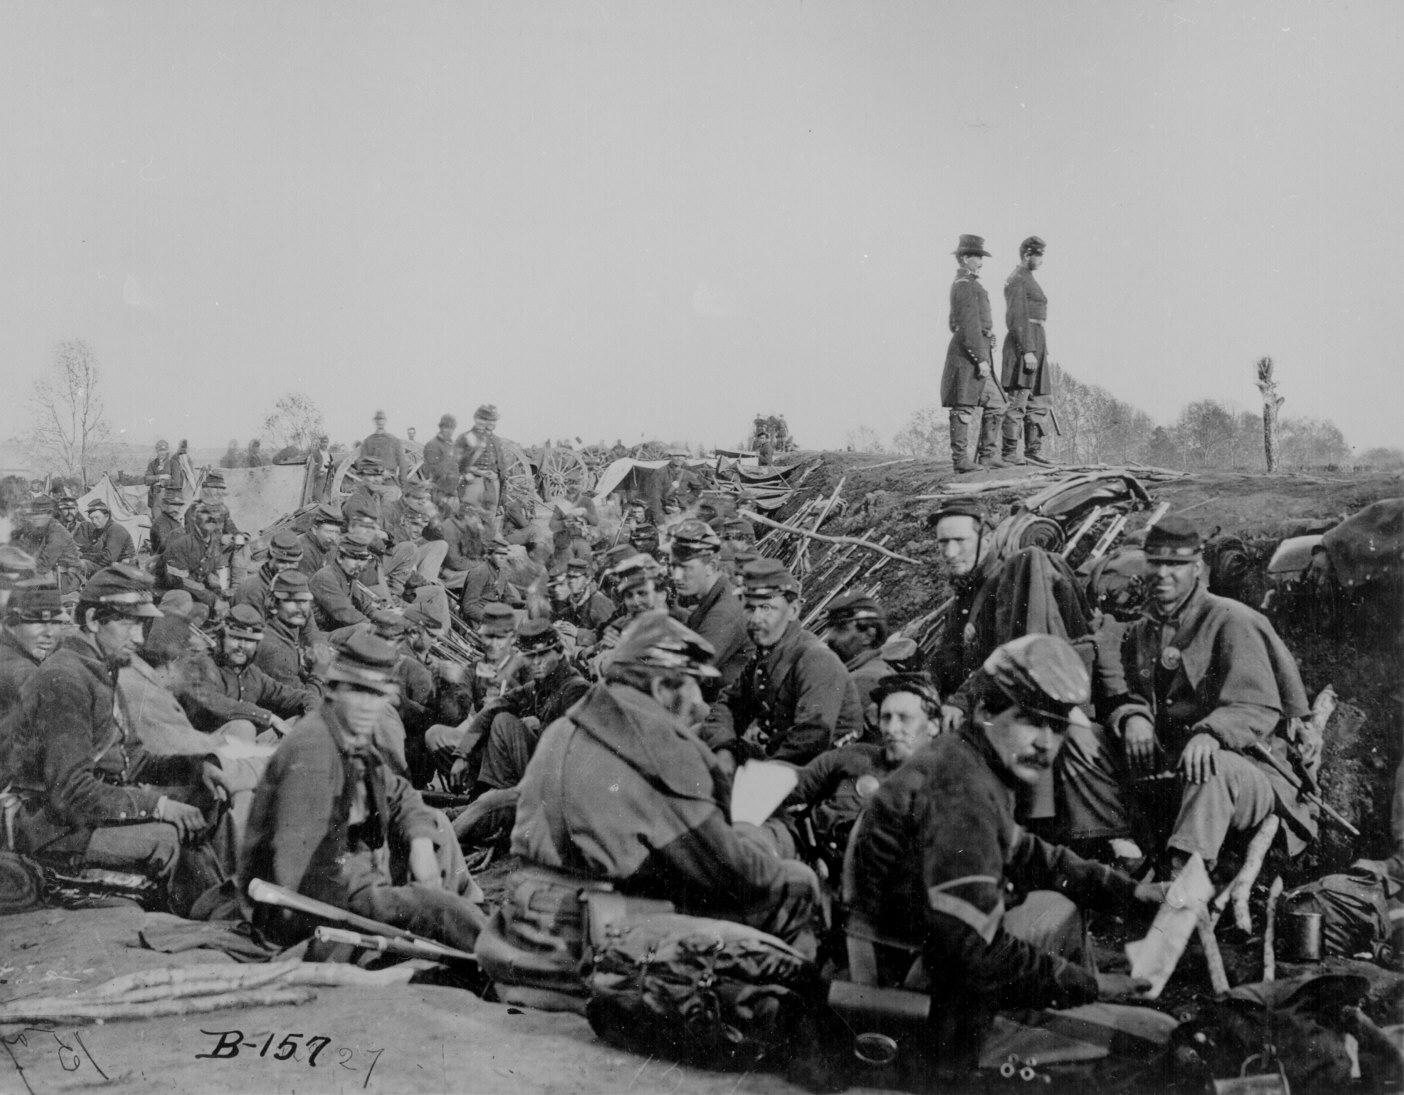 Soldiers in the trenches before battle, Petersburg, Va., 1865. 111-B-157.